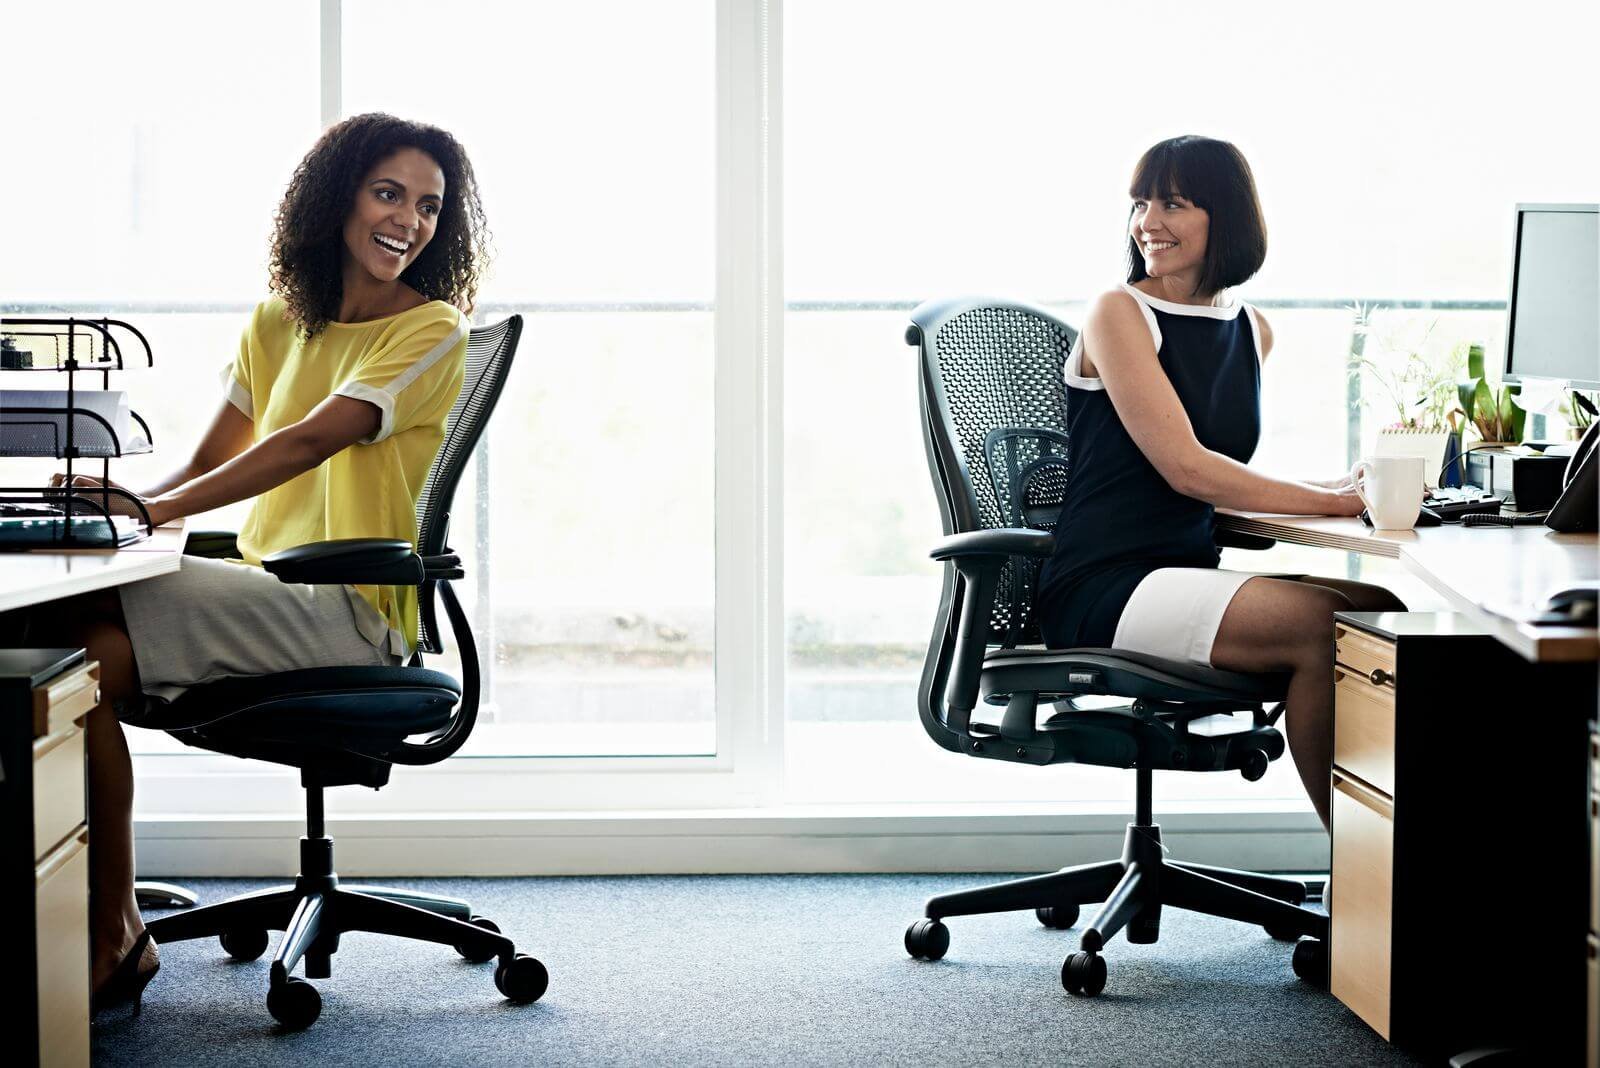 Female coworkers laughing and sitting in office chairs